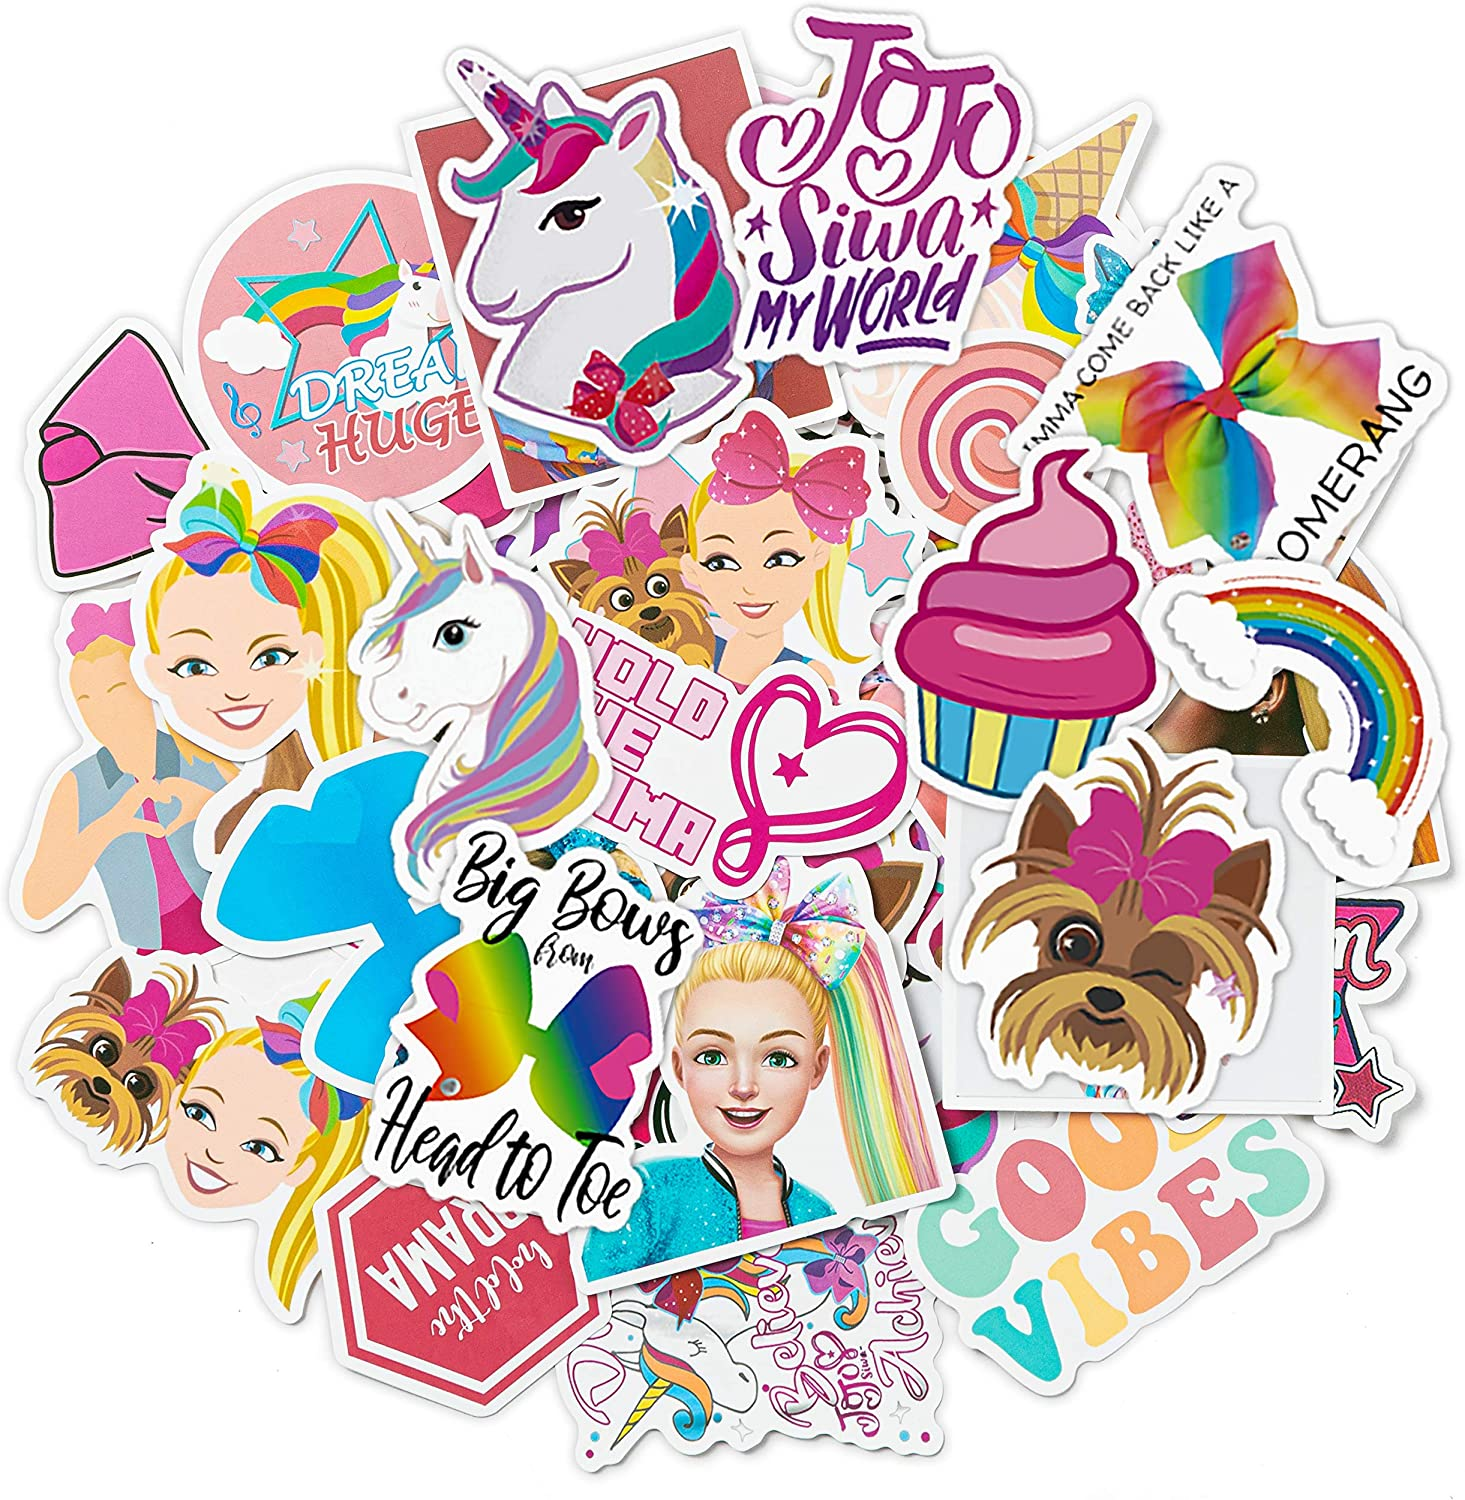 40Pack JoJo Stickers Cute Themed Sticker Party Supplies Rainbow Collections Waterproof Aesthetic Cartoon Favors for Water Bottle Laptop Phone Case Luggage Pen Holder Kids Gifts Rewards